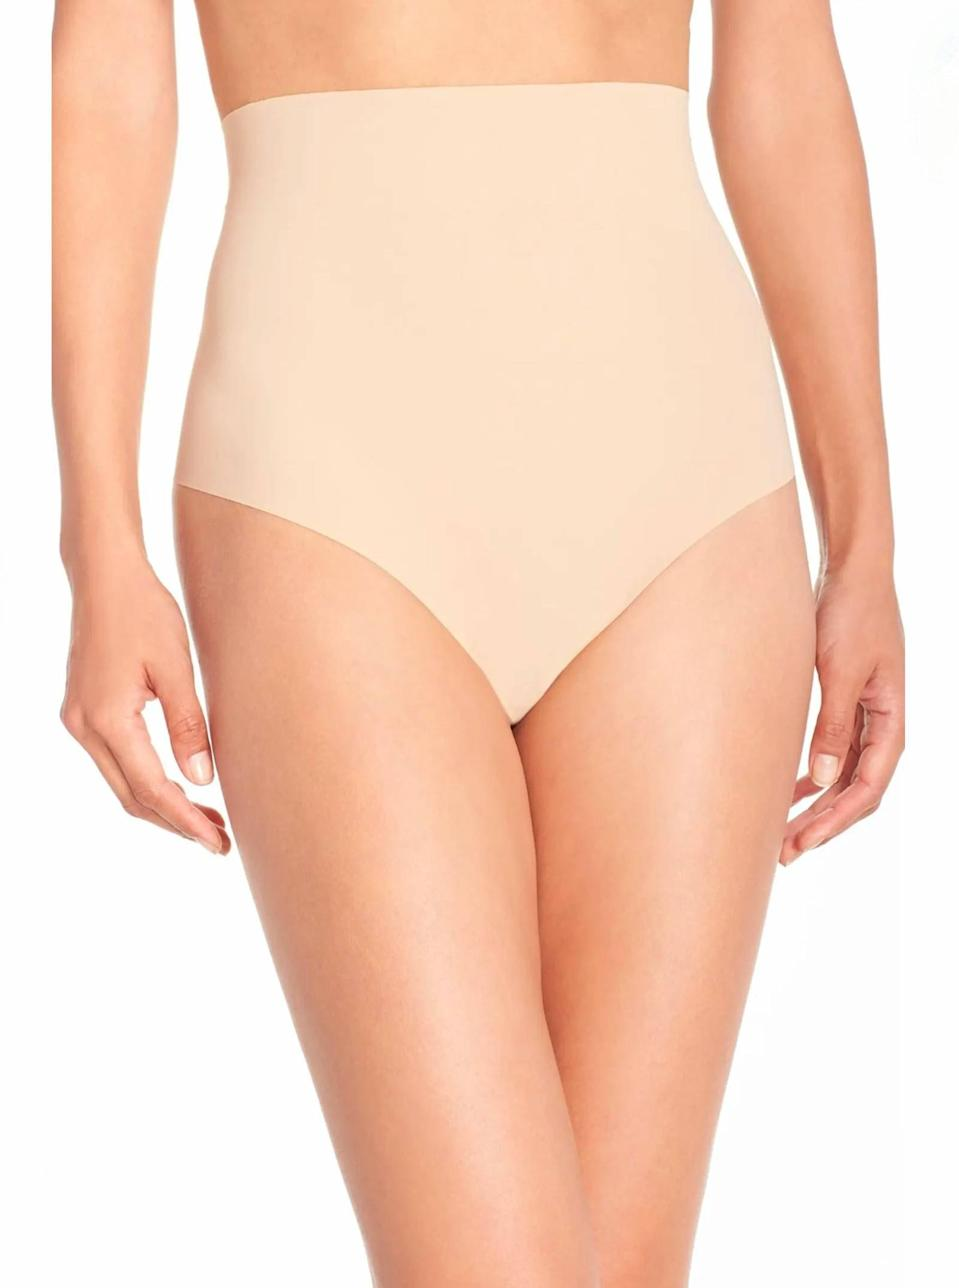 """Perfect for a bodycon moment, Commando's seamless thong hugs your hips and waist in all the right places. $38, Nordstrom. <a href=""""https://www.nordstrom.com/s/commando-control-top-thong/3322811"""" rel=""""nofollow noopener"""" target=""""_blank"""" data-ylk=""""slk:Get it now!"""" class=""""link rapid-noclick-resp"""">Get it now!</a>"""